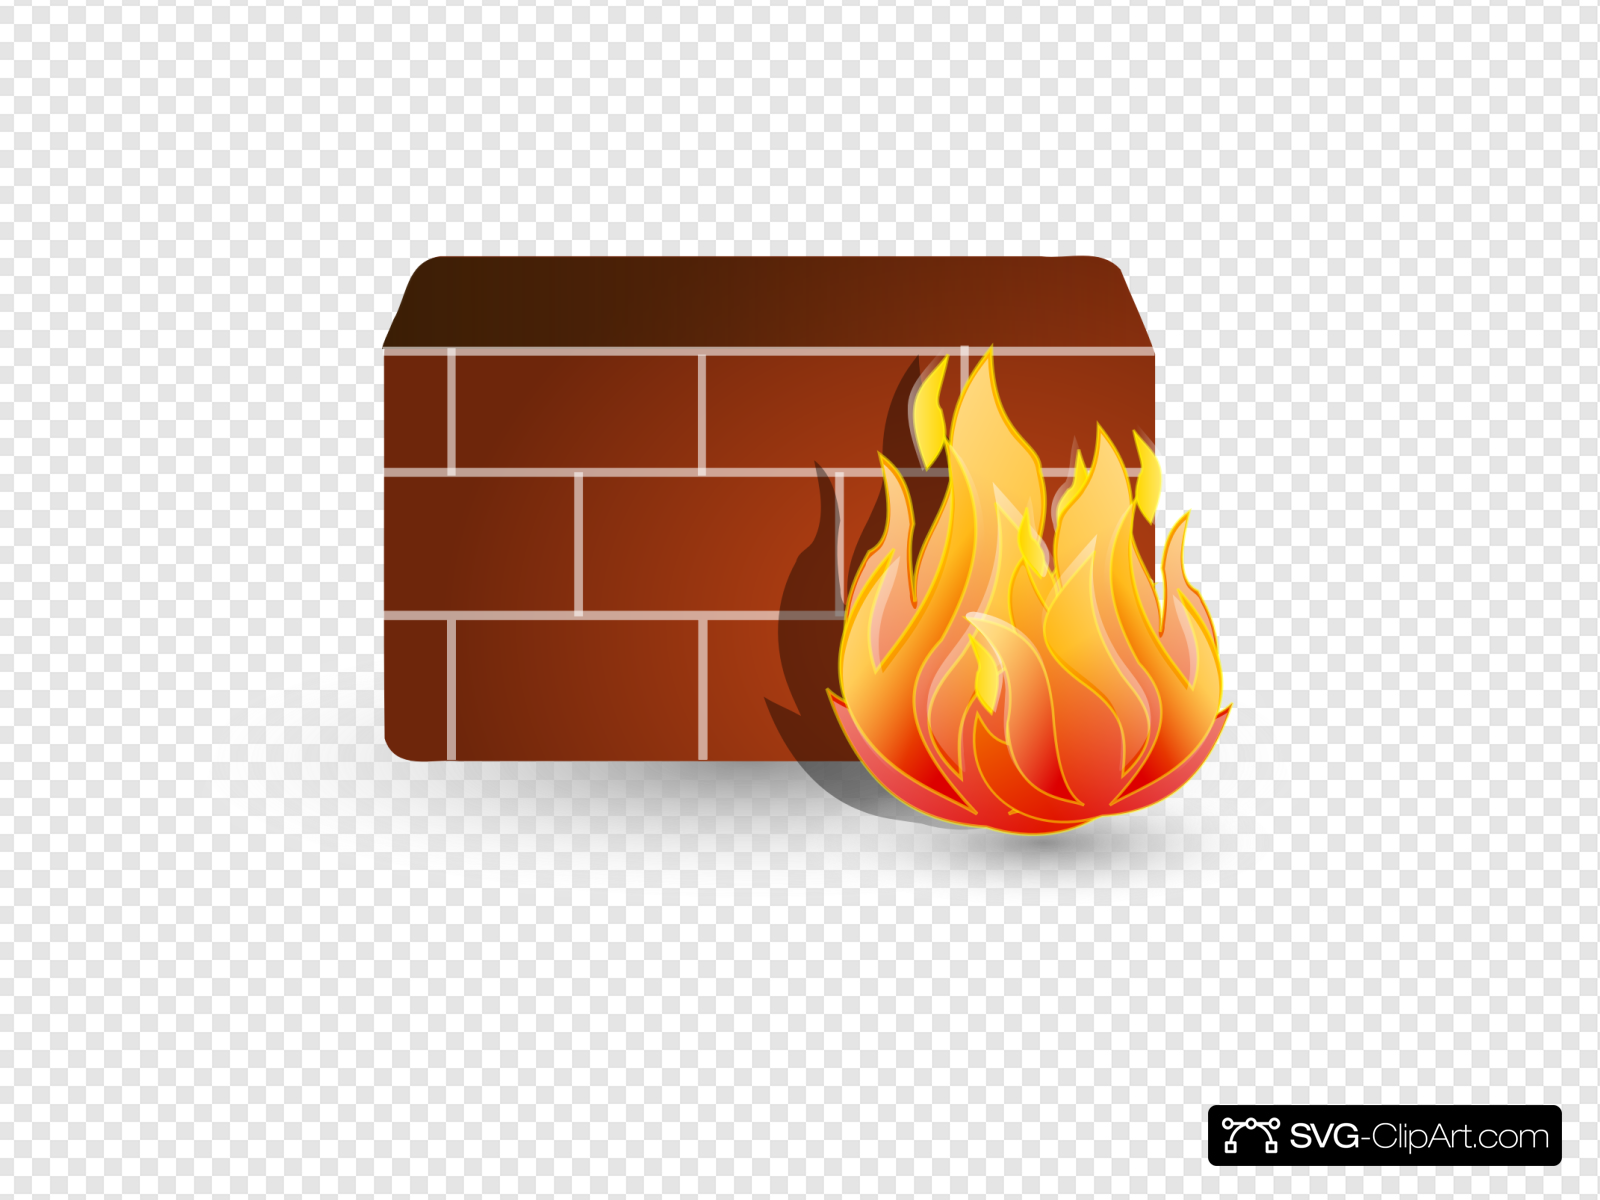 Firewall Clip art, Icon and SVG.